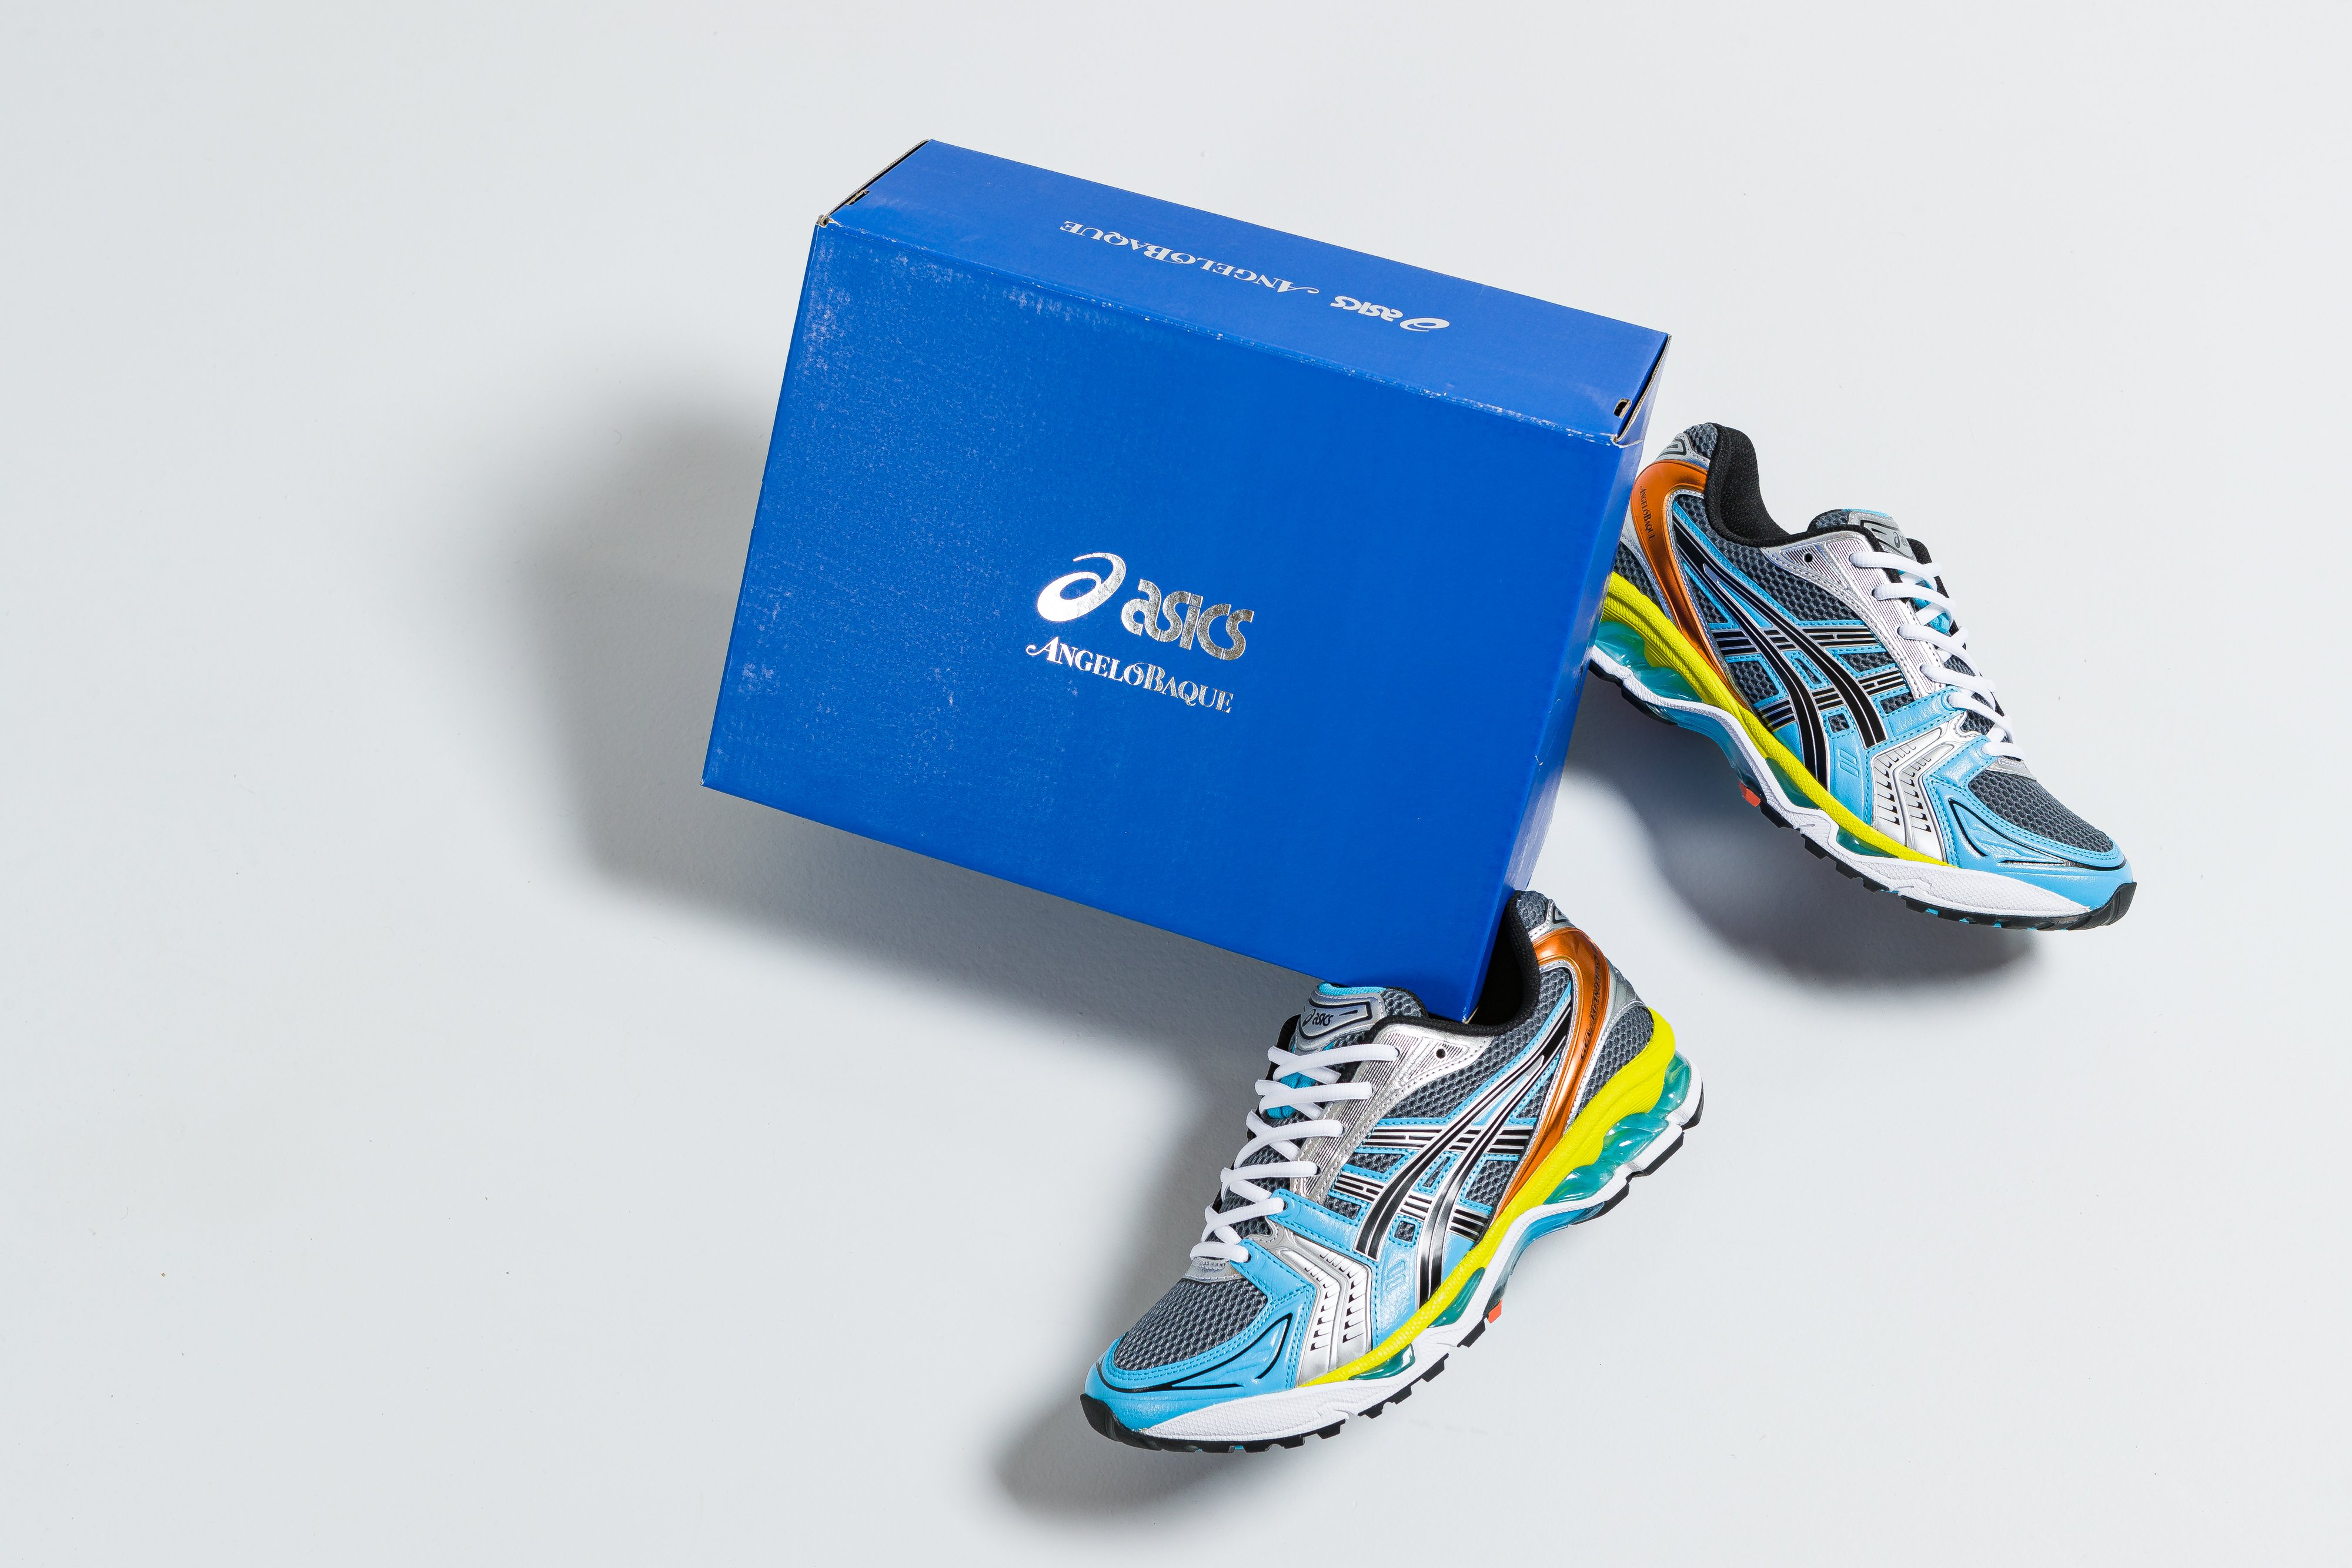 Up There Store - Asics X Angelo Baque Gel-Kayano 14